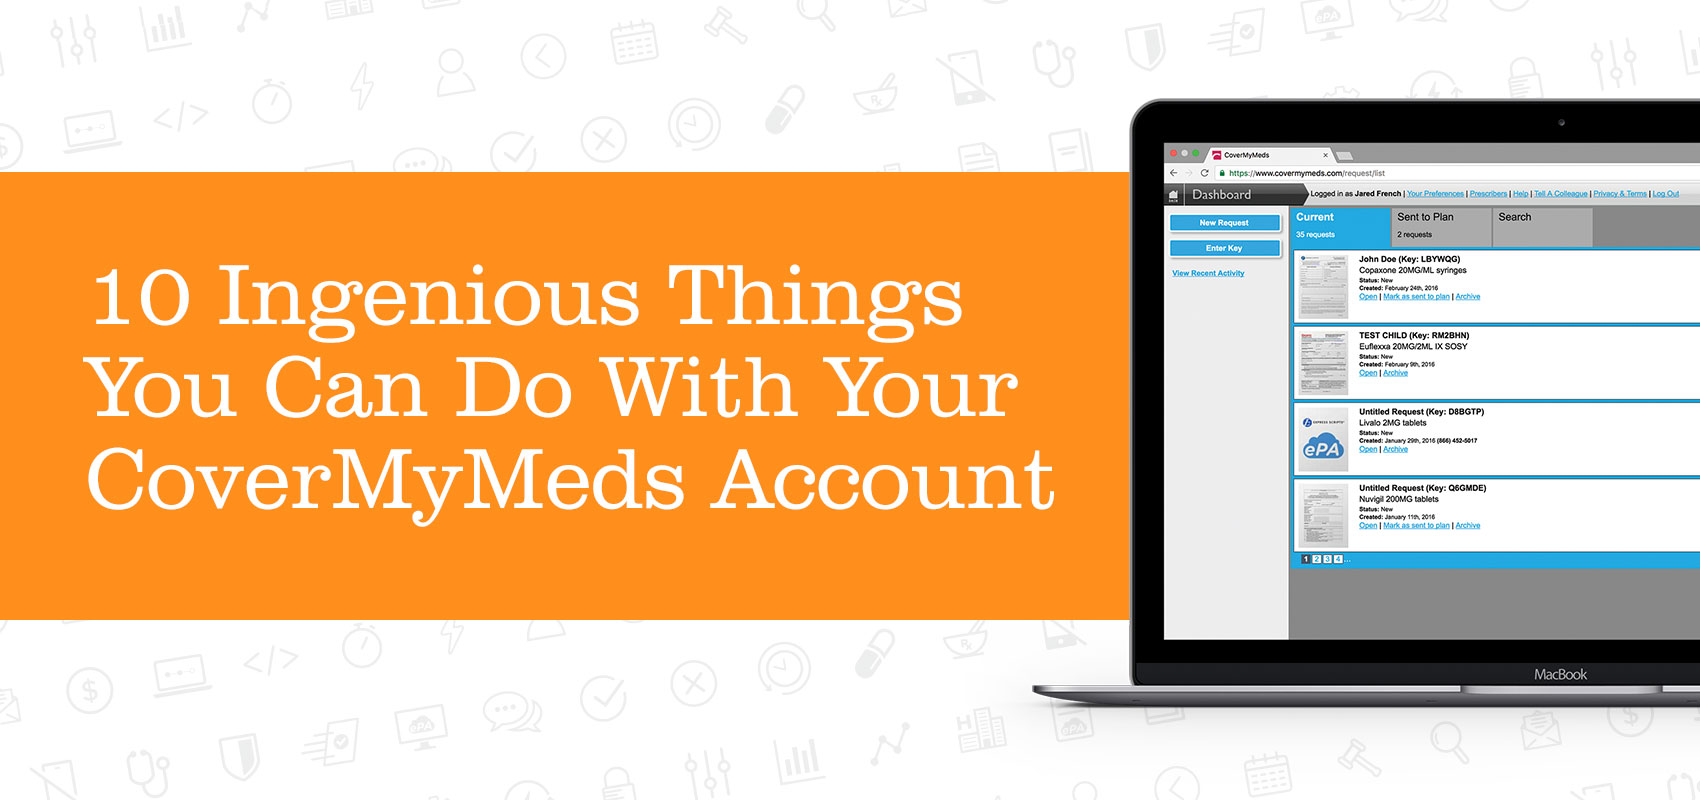 10 Ingenius Things You Can Do With Your Covermymeds Account